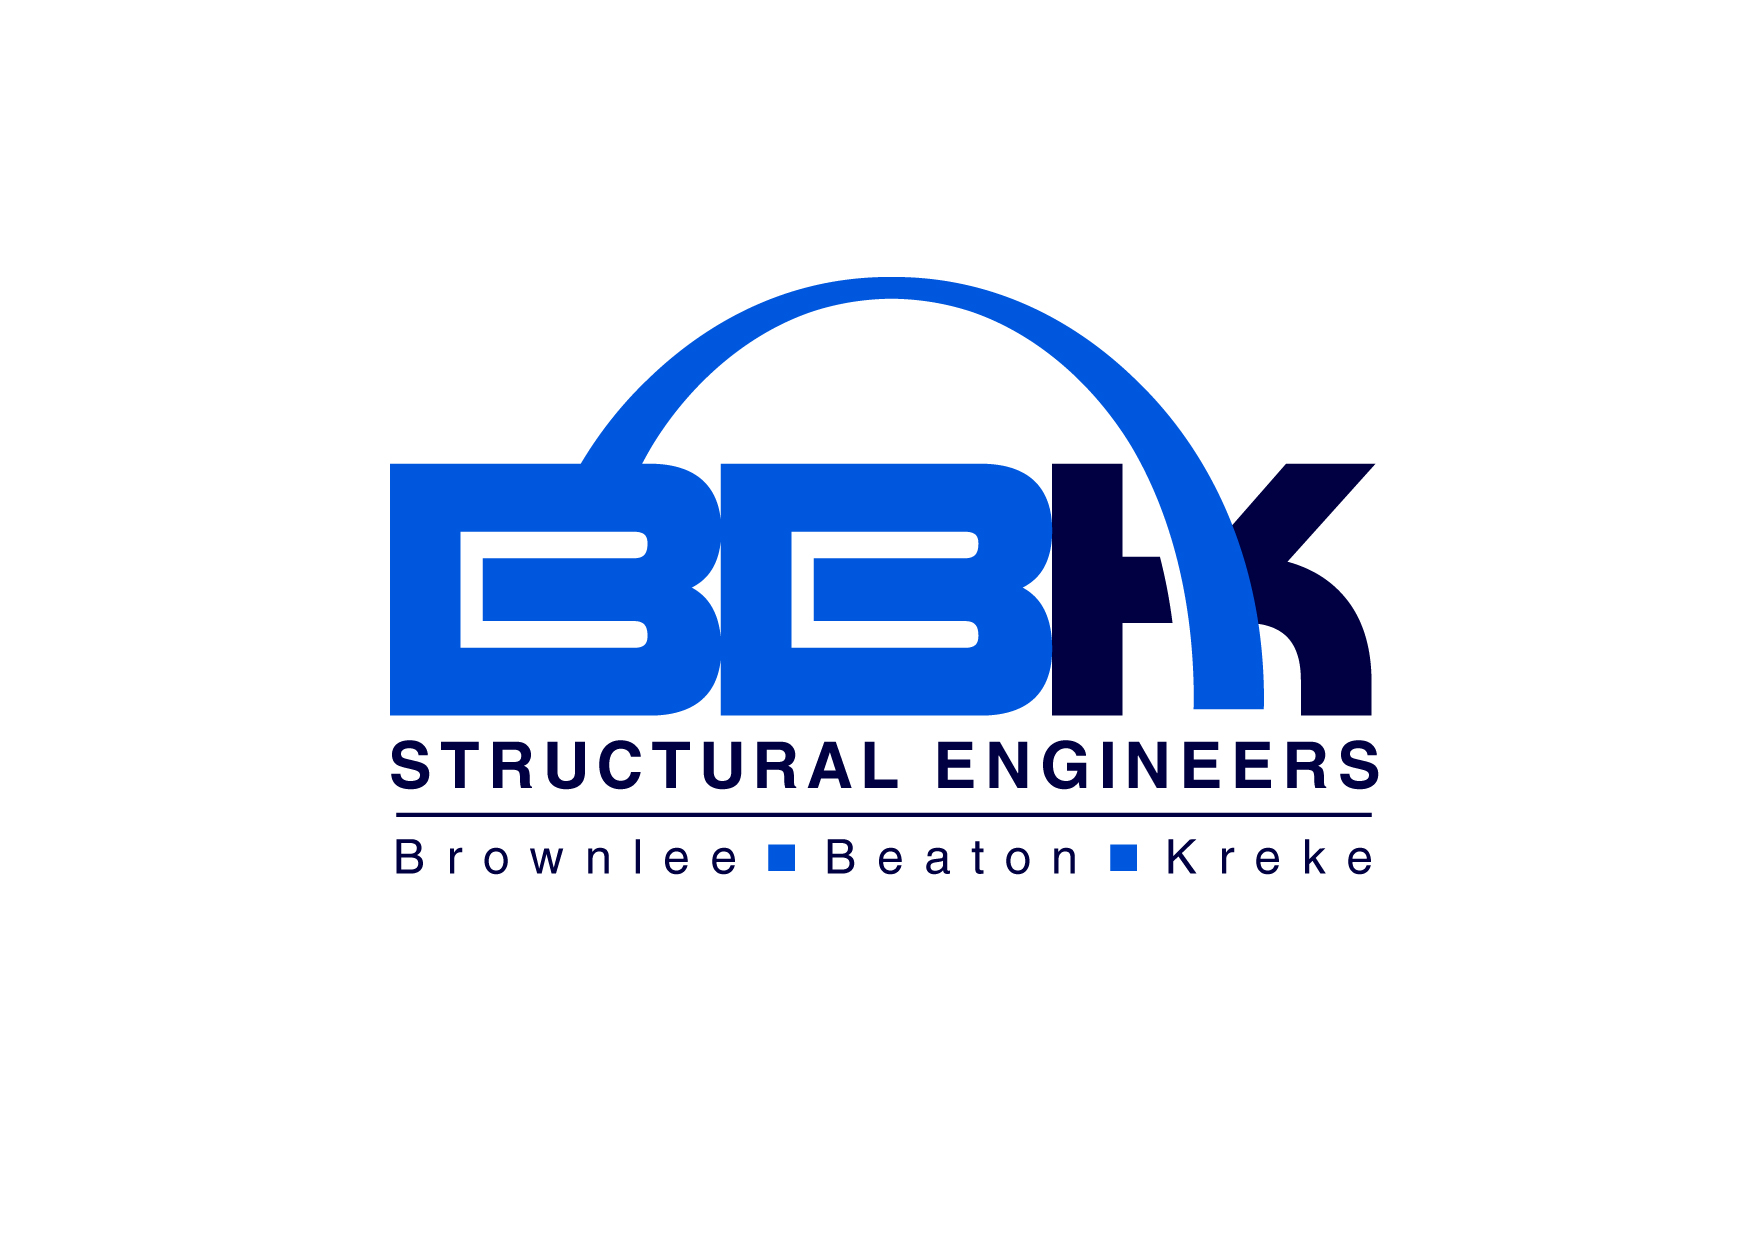 Logo Design by Wilfredo Mendoza - Entry No. 112 in the Logo Design Contest Logo Design Needed for Exciting New Company BBK Consulting Engineers.